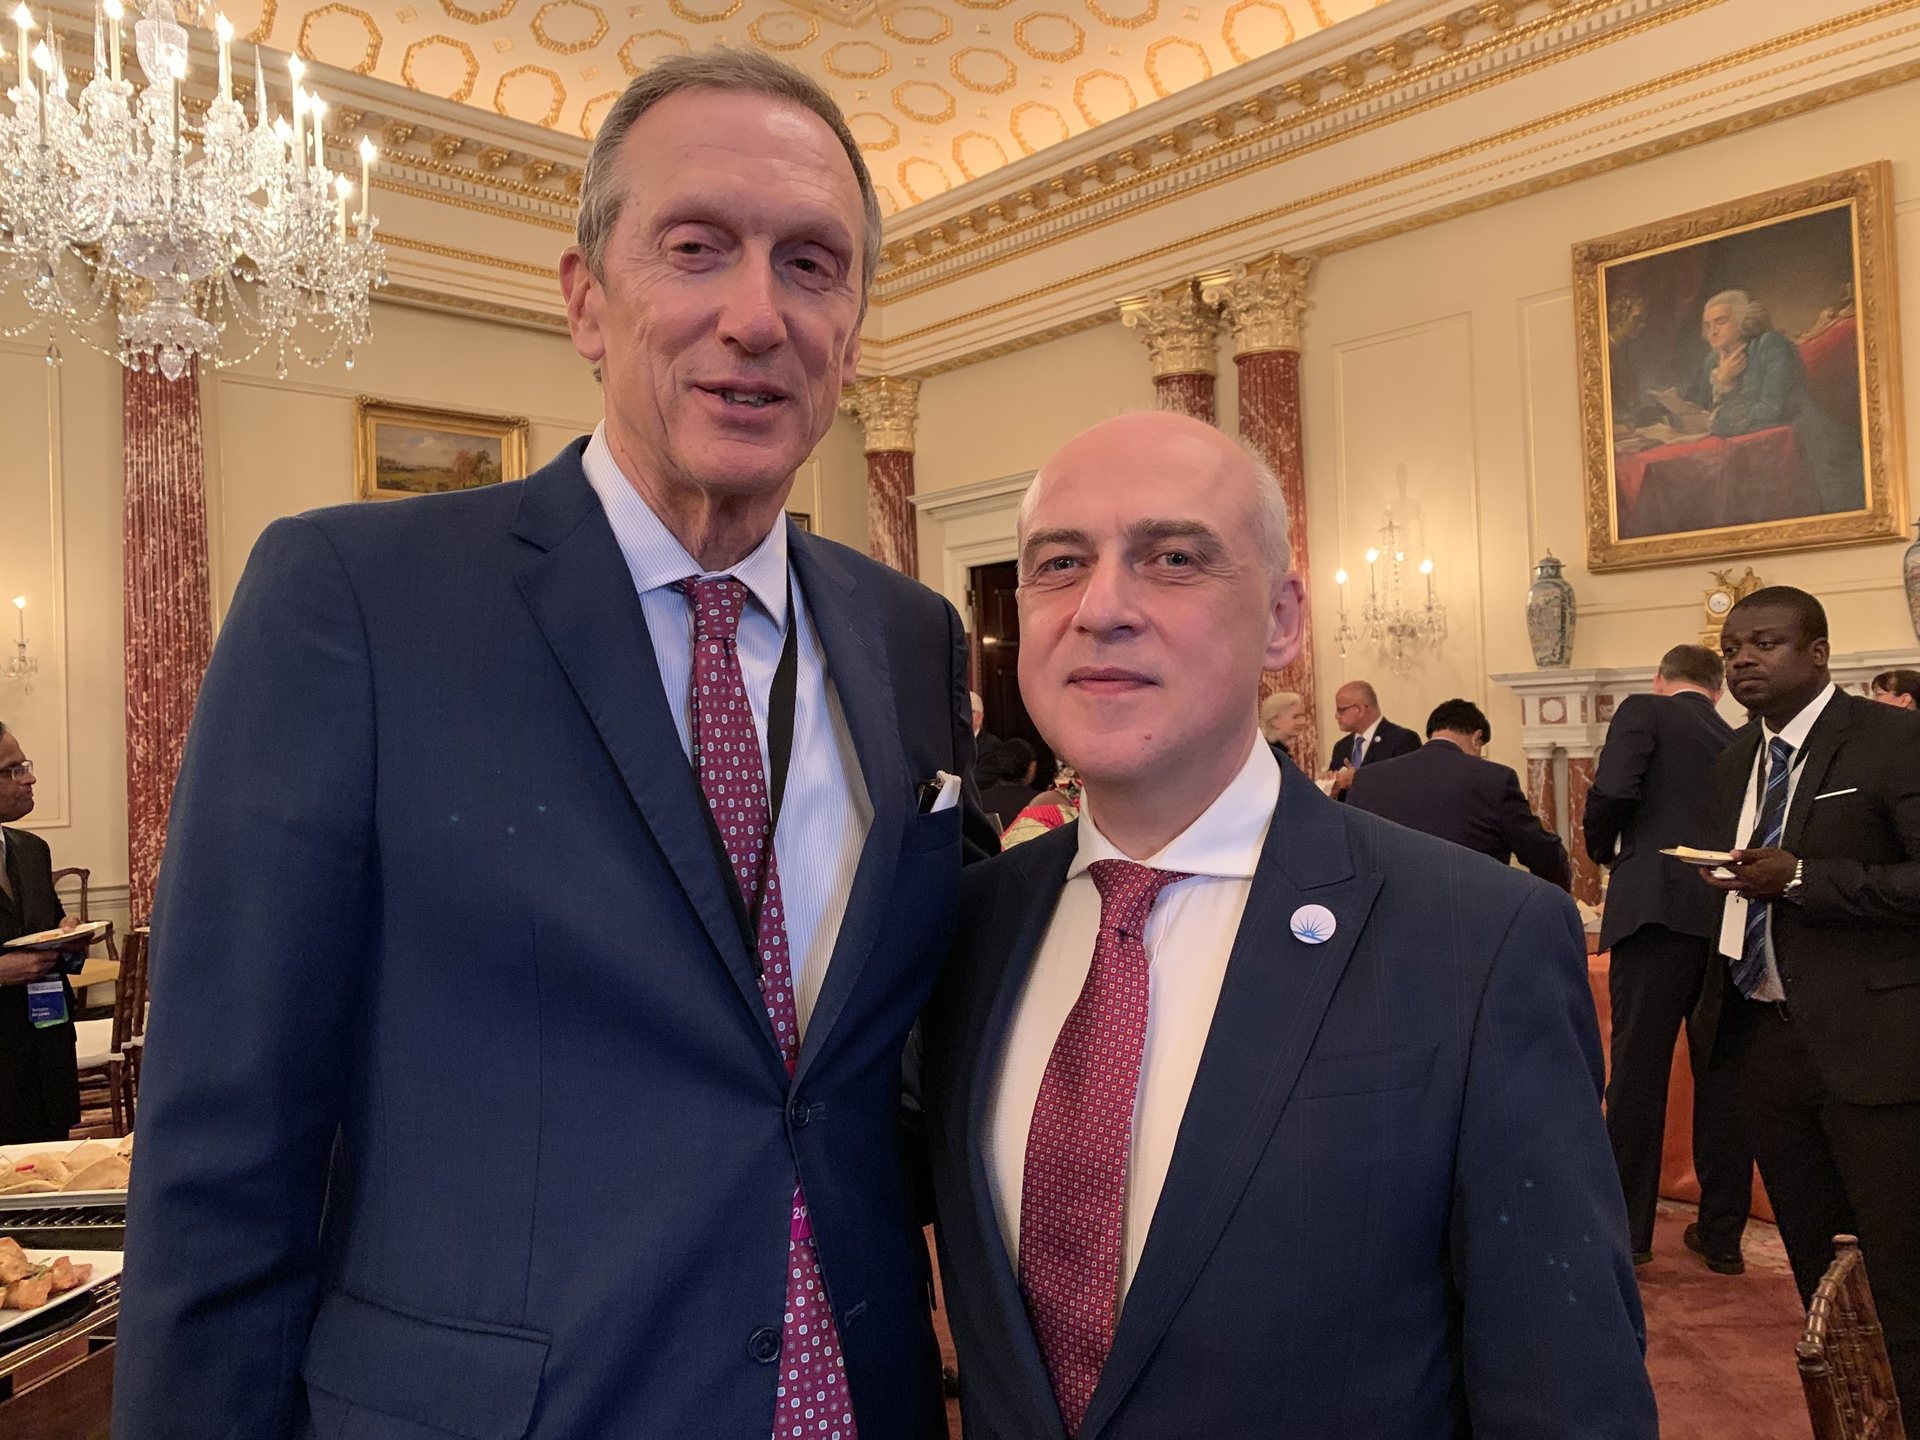 July 17: CEO Mark Levin with Foreign Minister of Georgia David Zalkaliani in the Ben Franklin Room at the State Department.